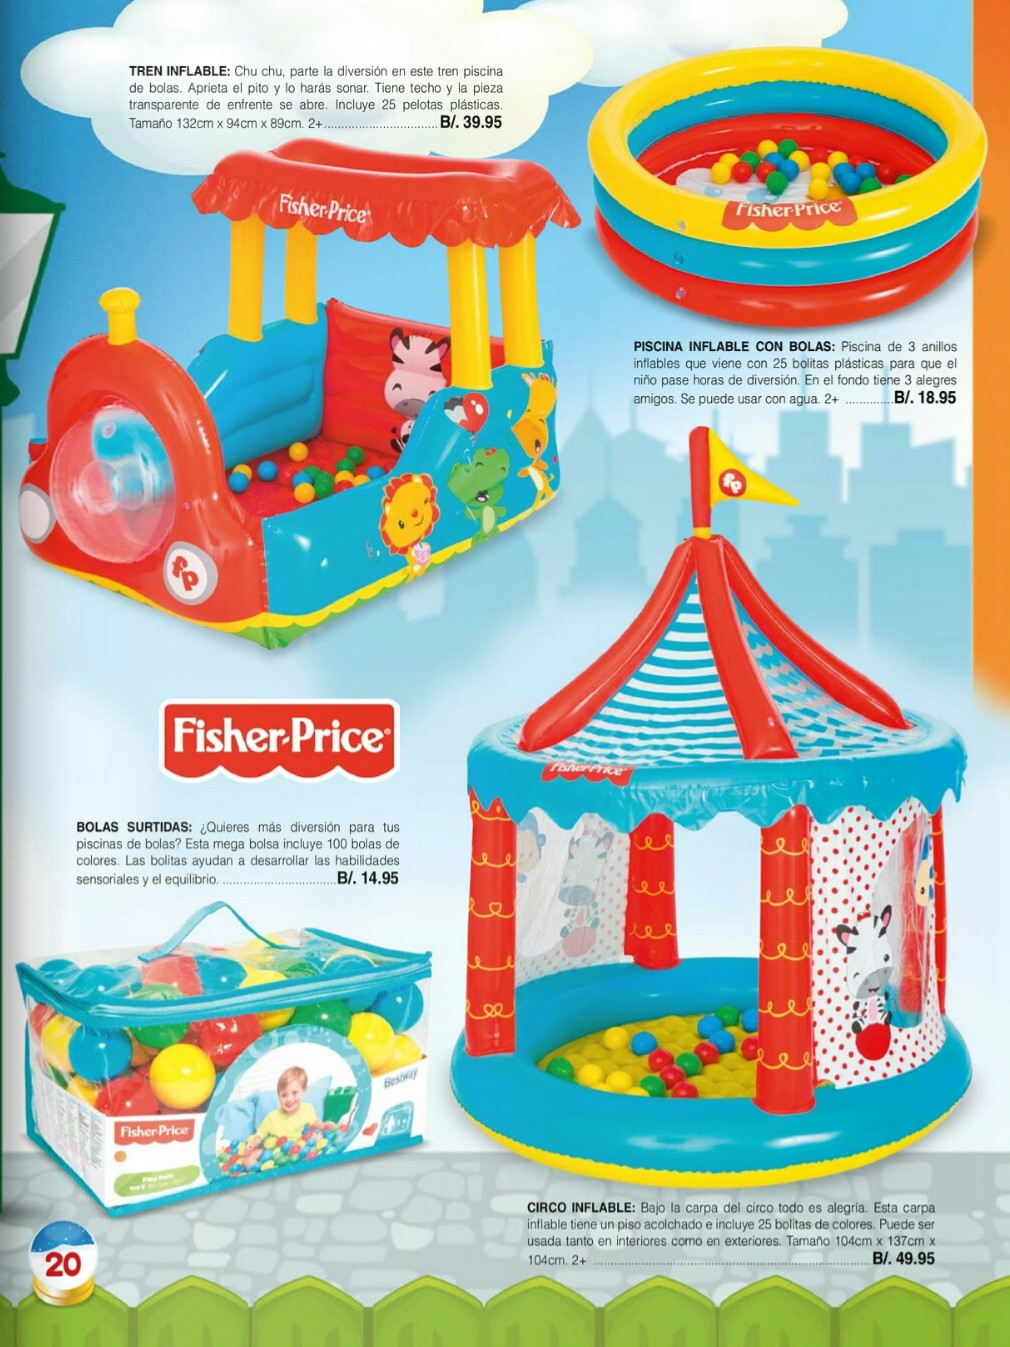 Catalogo juguetes Stivie toys 2018 p20